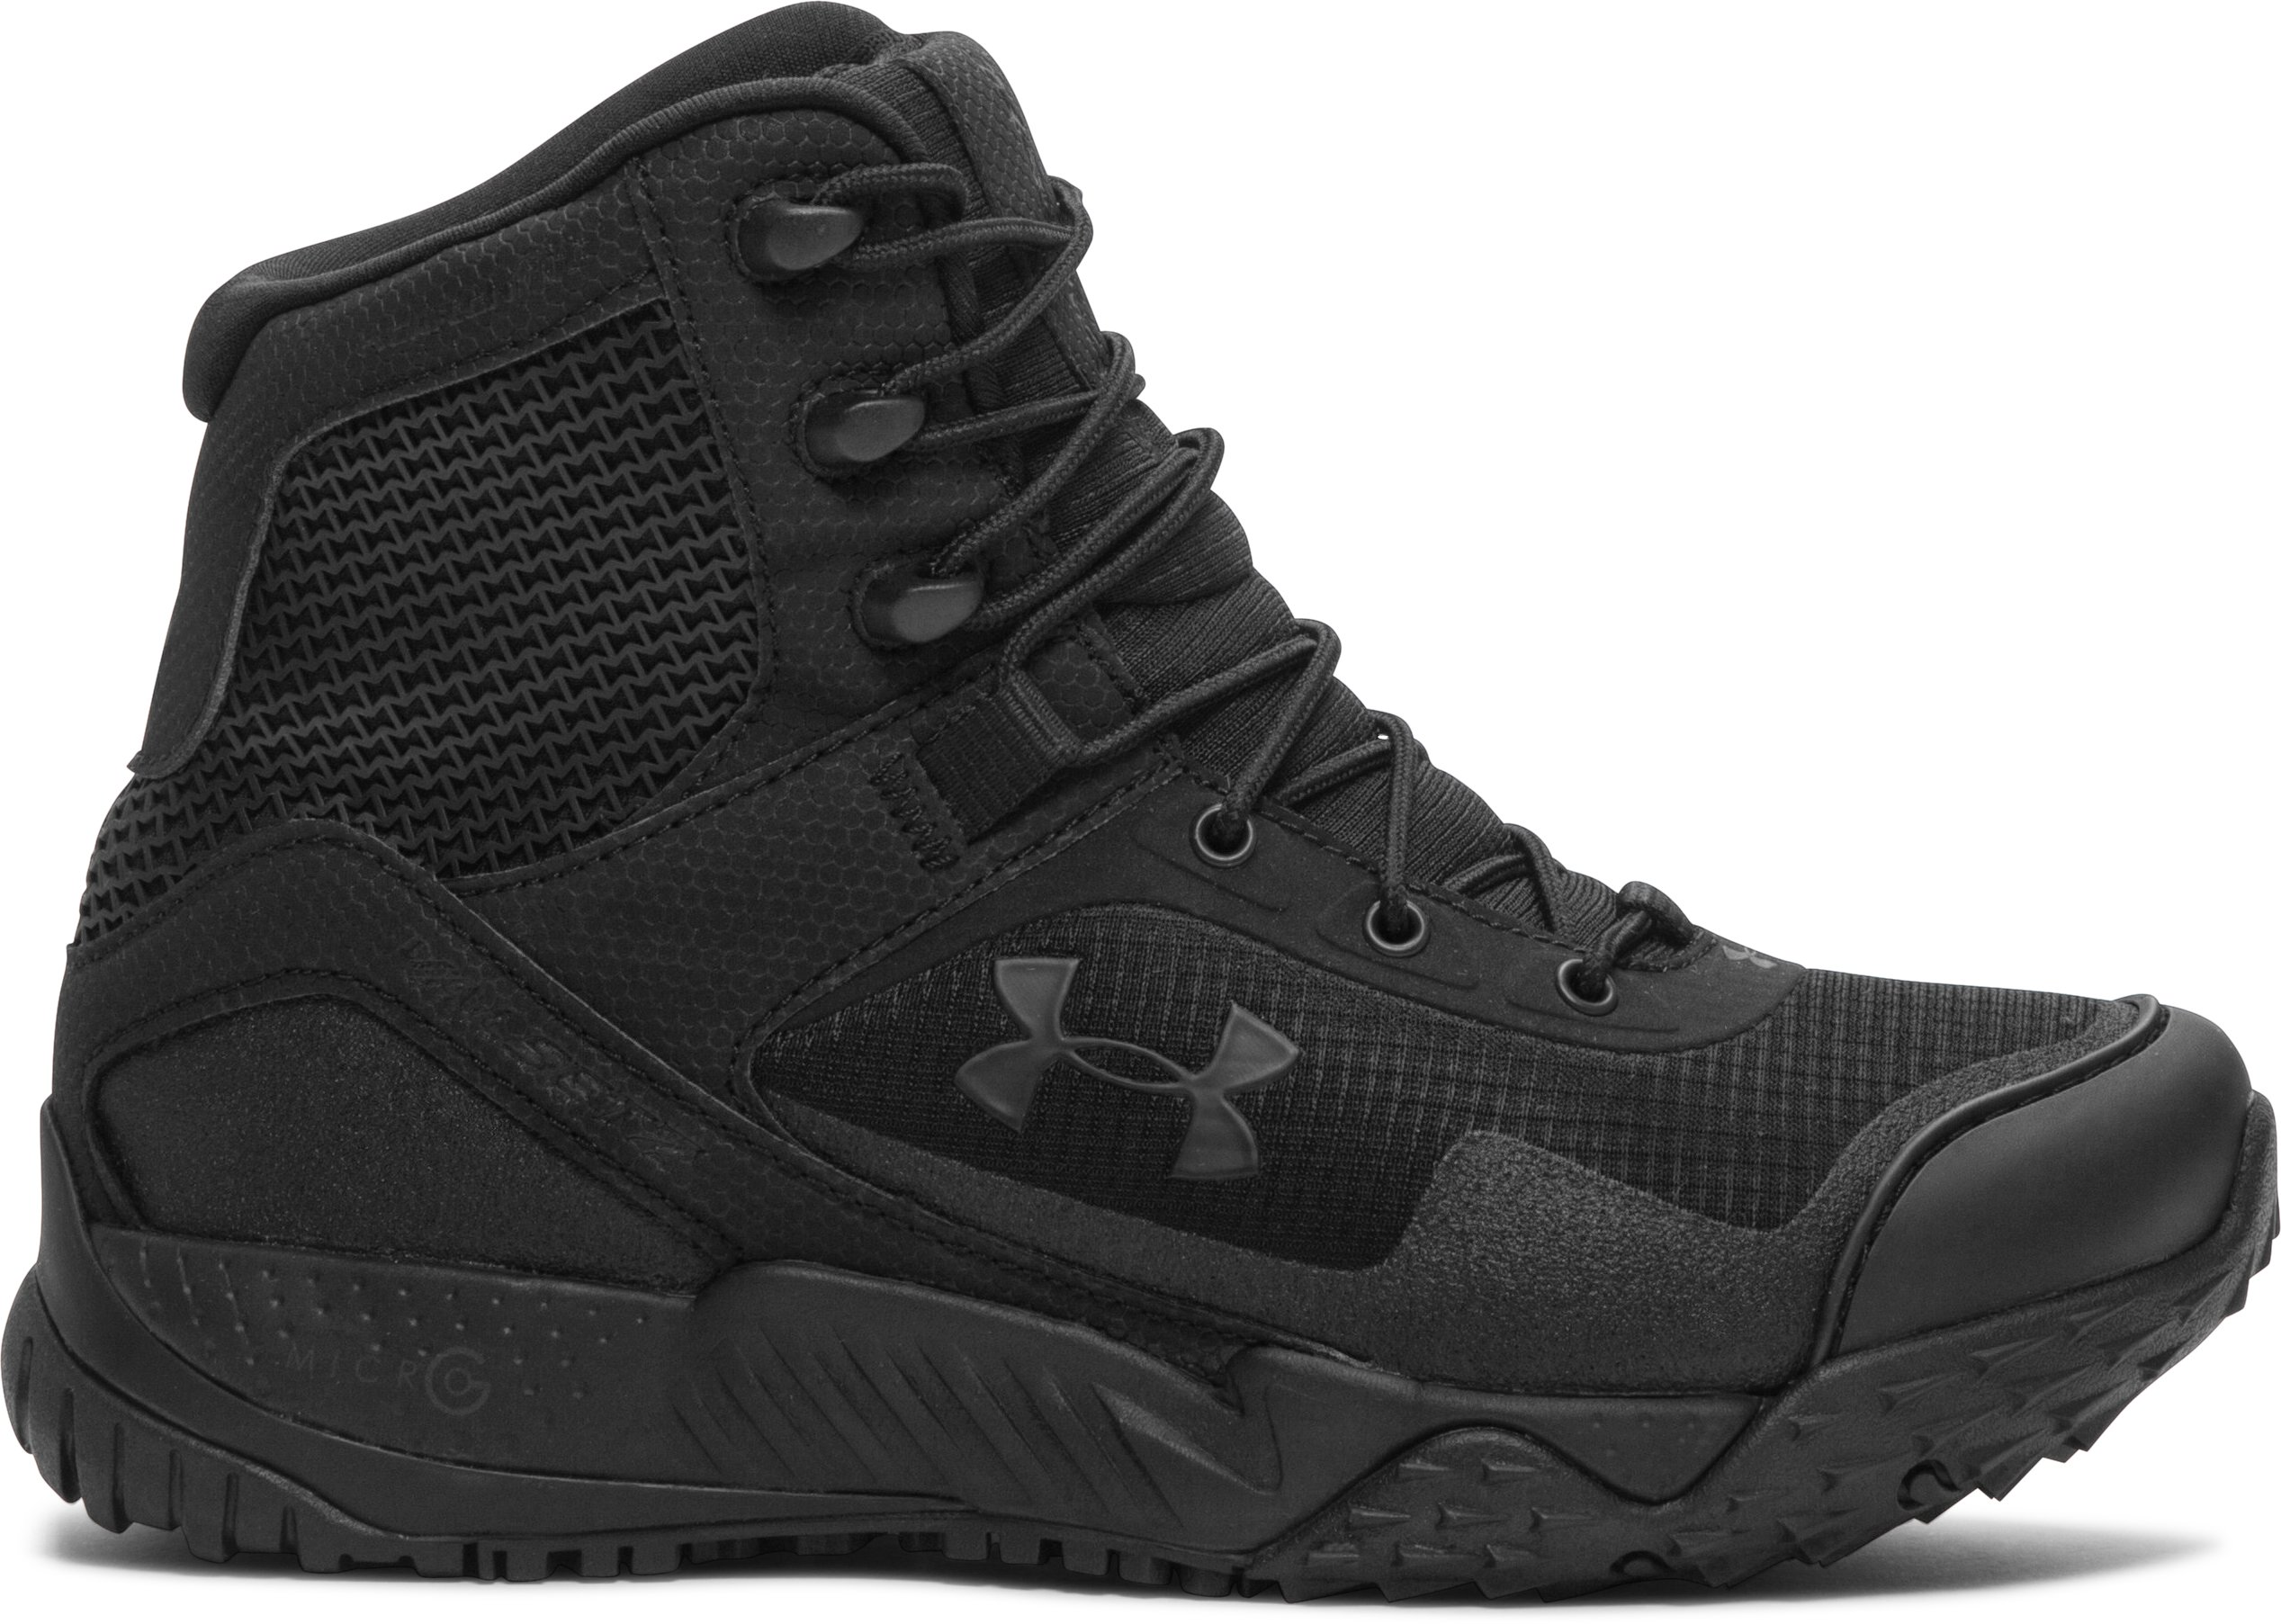 Women's UA Valsetz RTS Boot 2 Colors $71.99 - $89.99